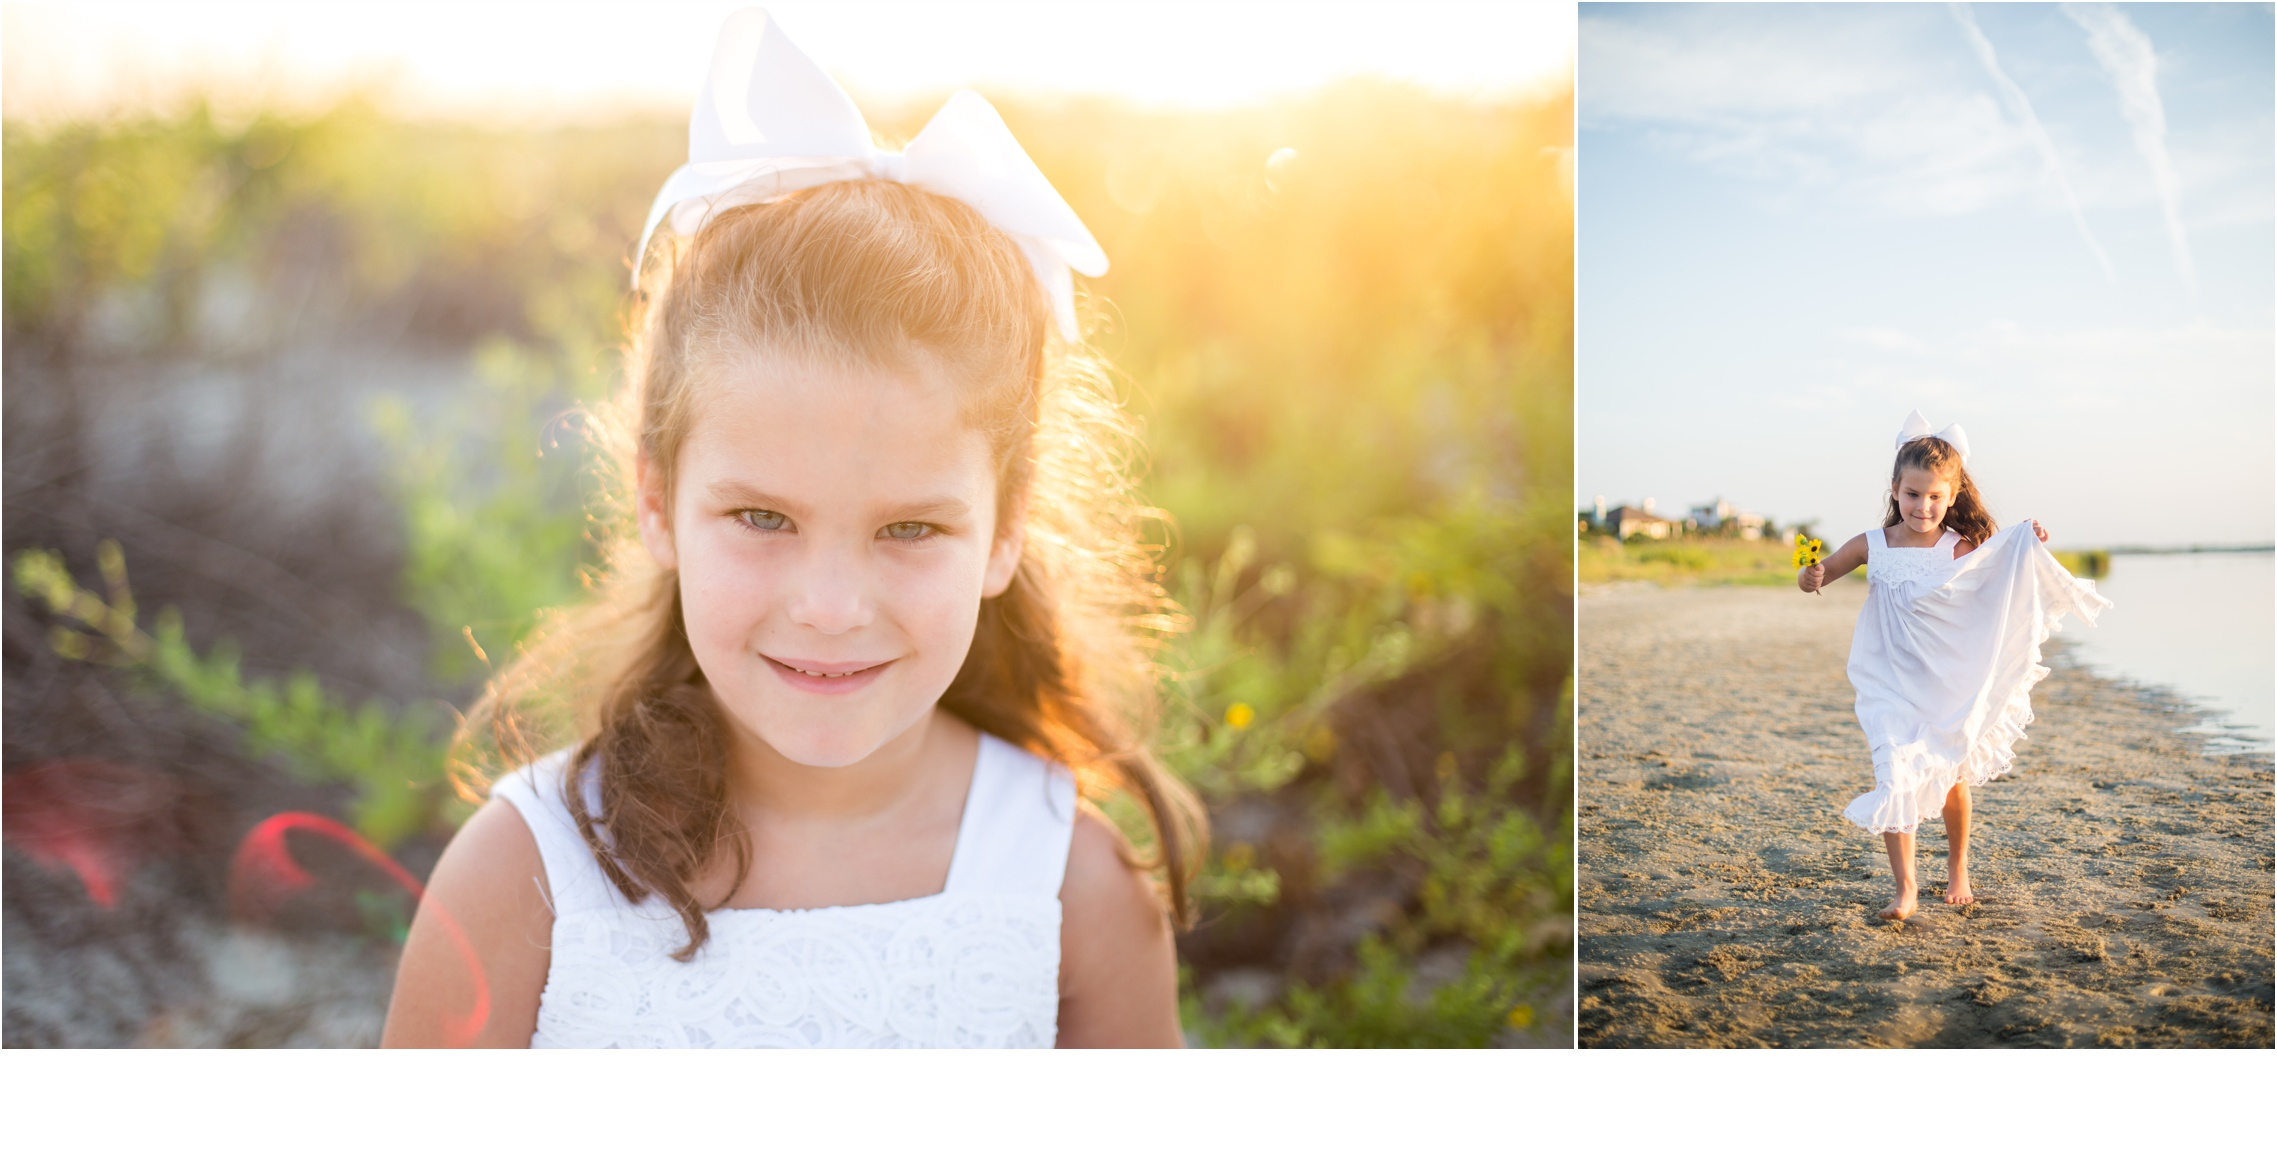 Rainey_Gregg_Photography_St._Simons_Island_Georgia_California_Wedding_Portrait_Photography_0171.jpg